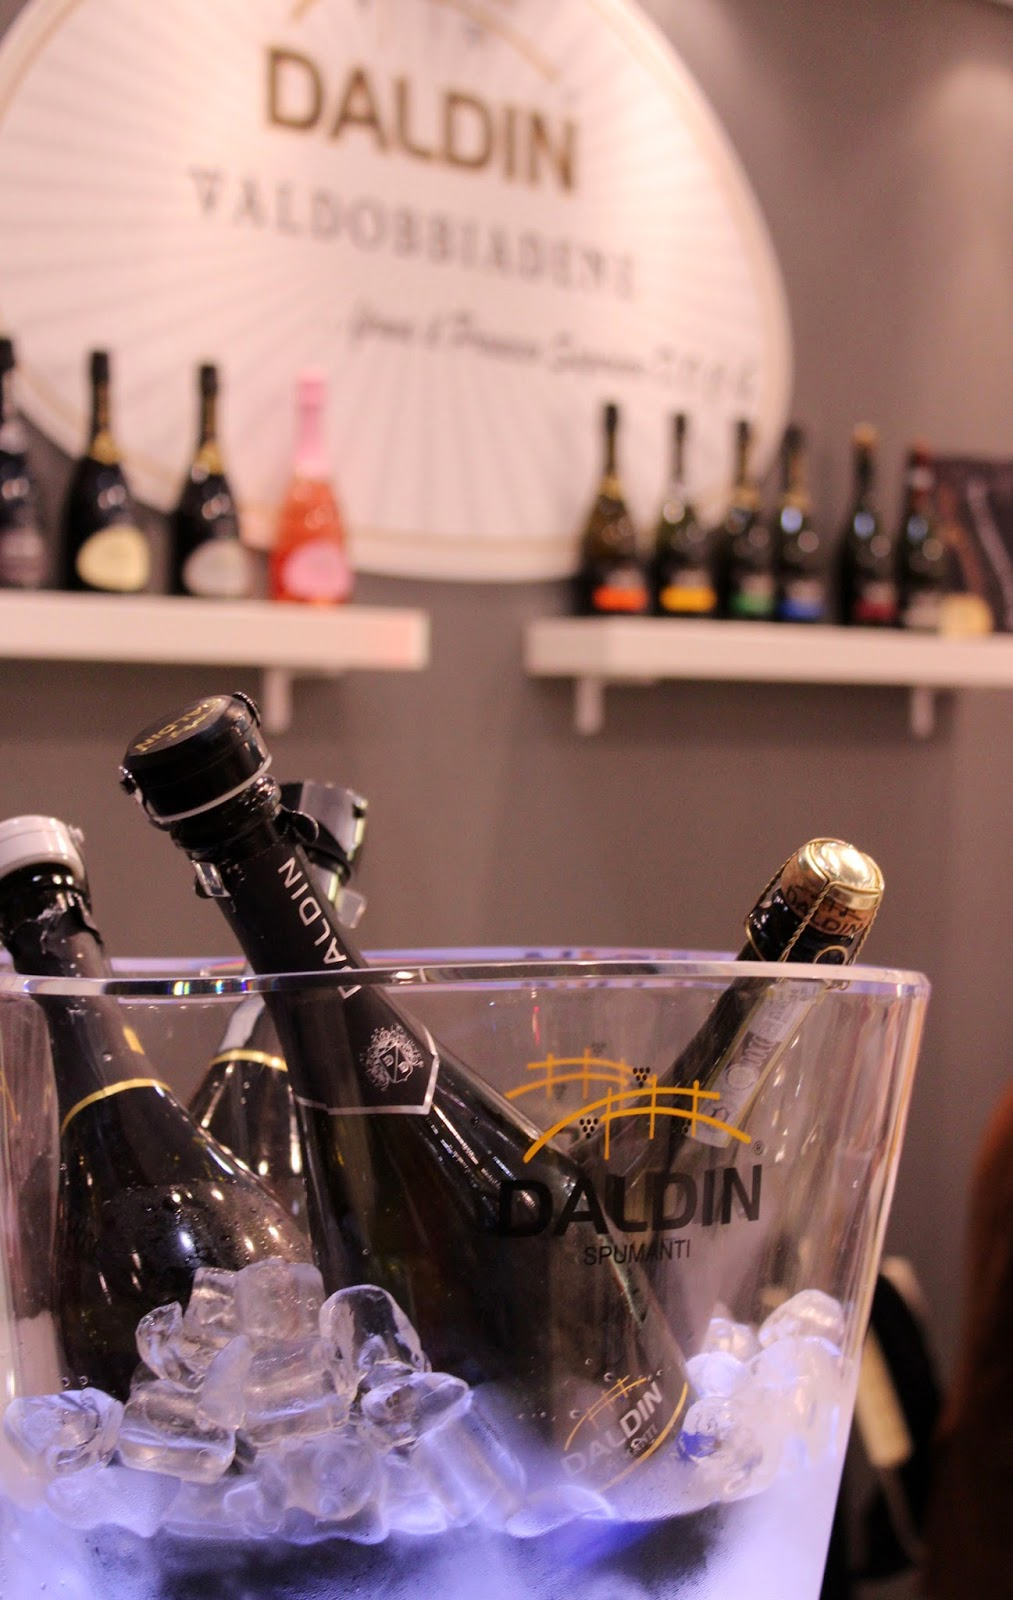 Eniwhere Fashion - Vinitaly 2015 - Daldin